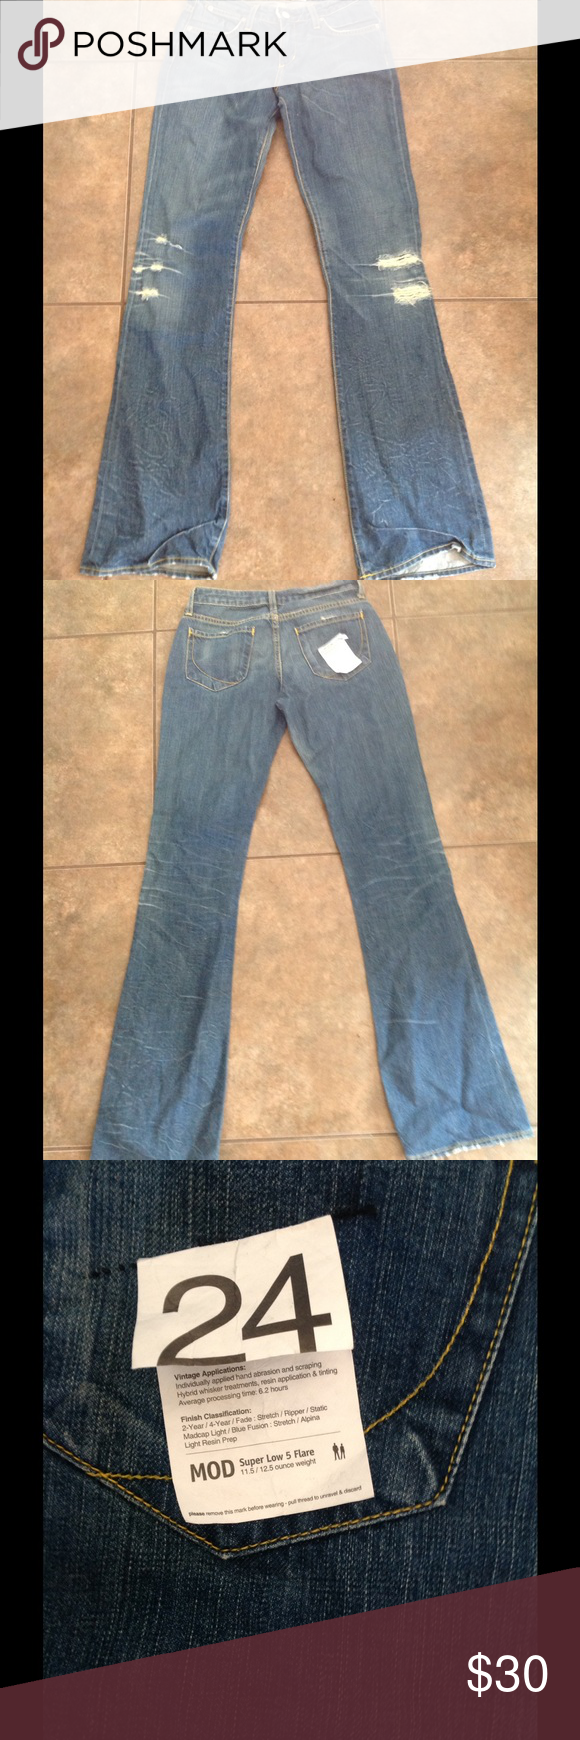 Paper Denim & Cloth jeans Mod Super Low 5 Flare Jeans-Size 24 Paper Denim & Cloth Jeans Flare & Wide Leg